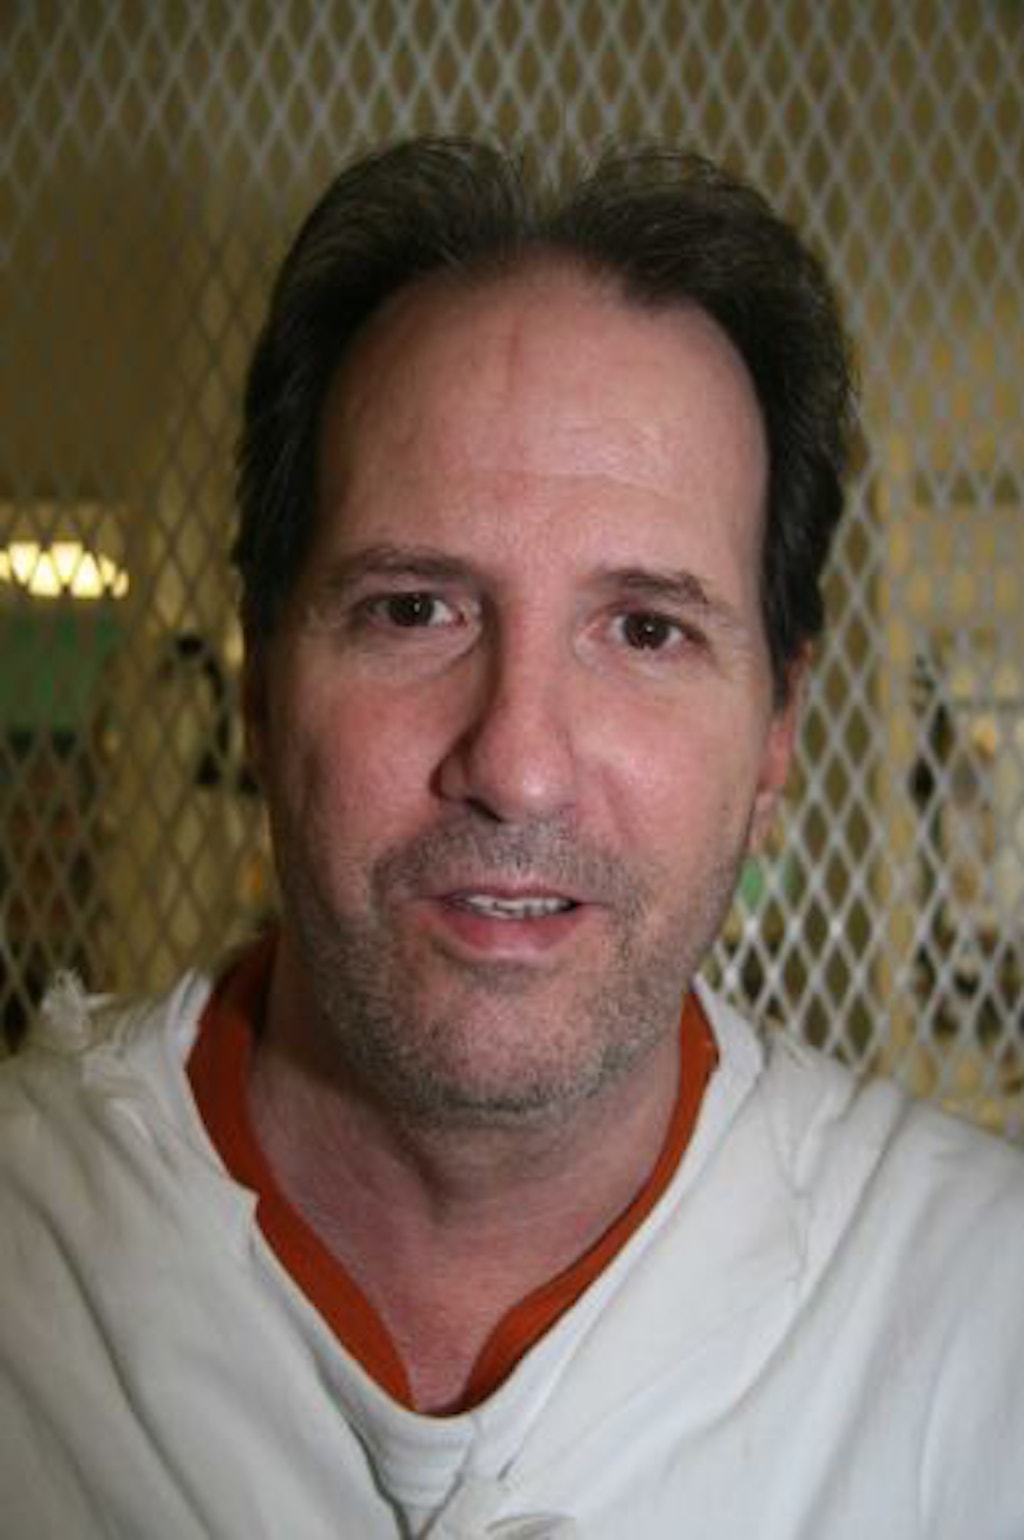 Dying Texas Death-Row Inmate - Possibly Innocent - Seeks Relief from His Conviction